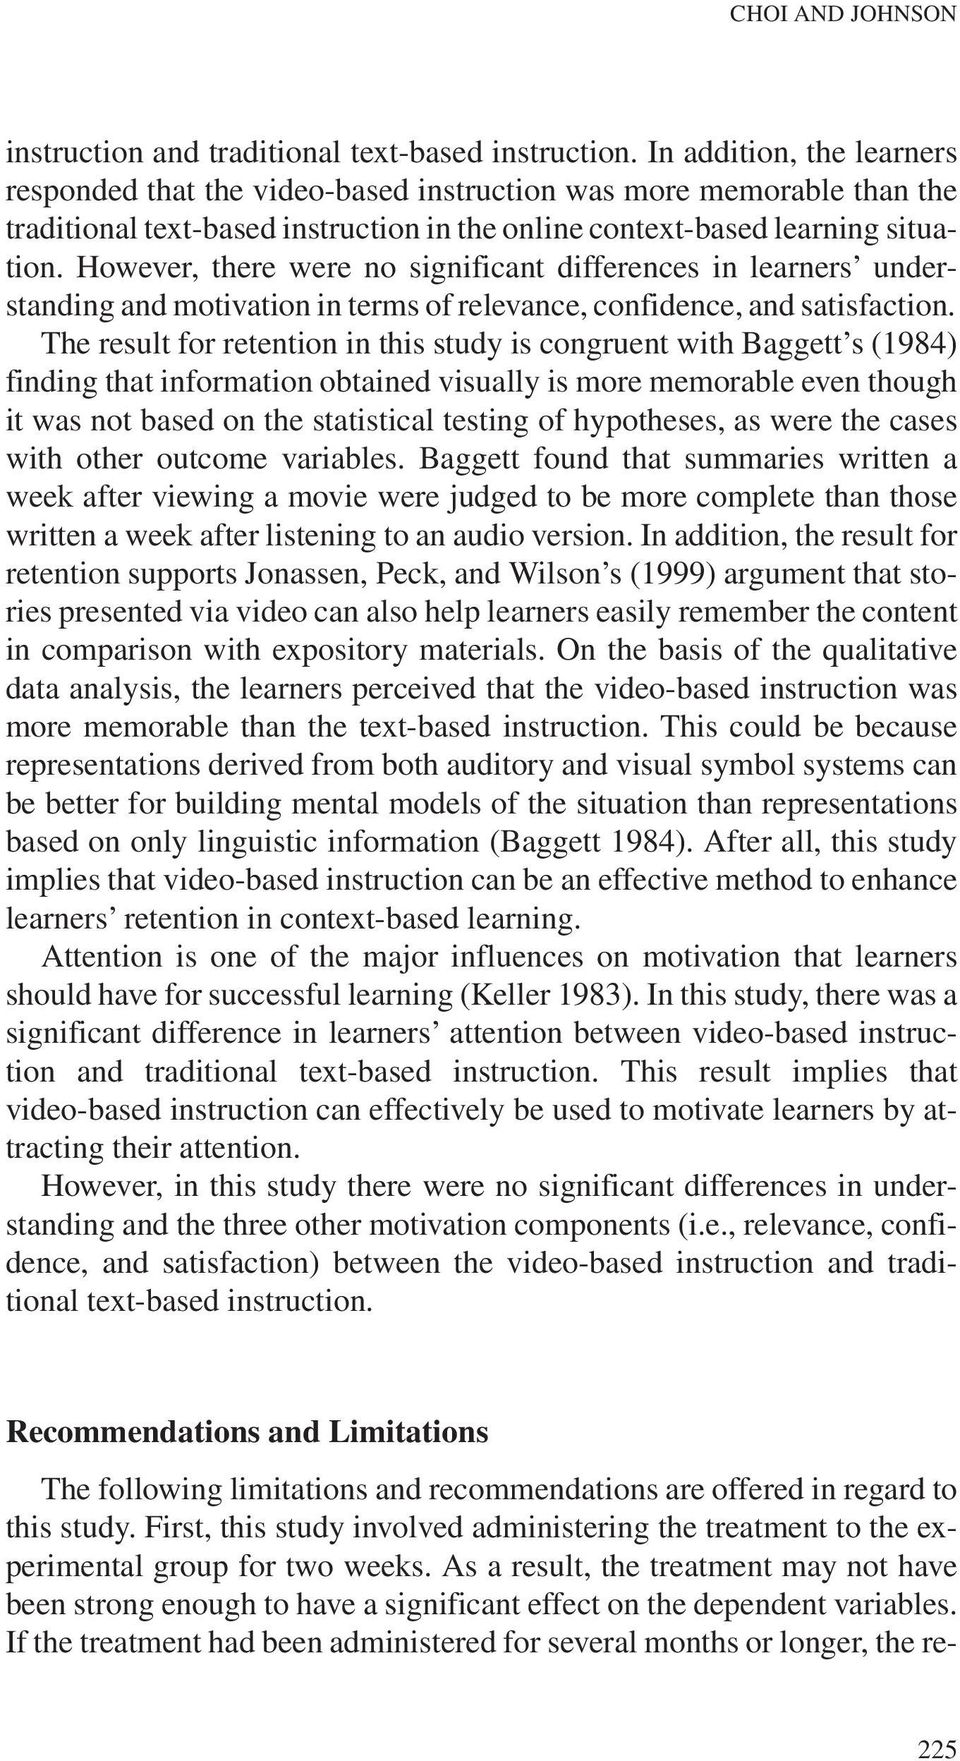 The result for retention in this study is congruent with Baggett s (1984) finding that information obtained visually is more memorable even though it was not based on the statistical testing of